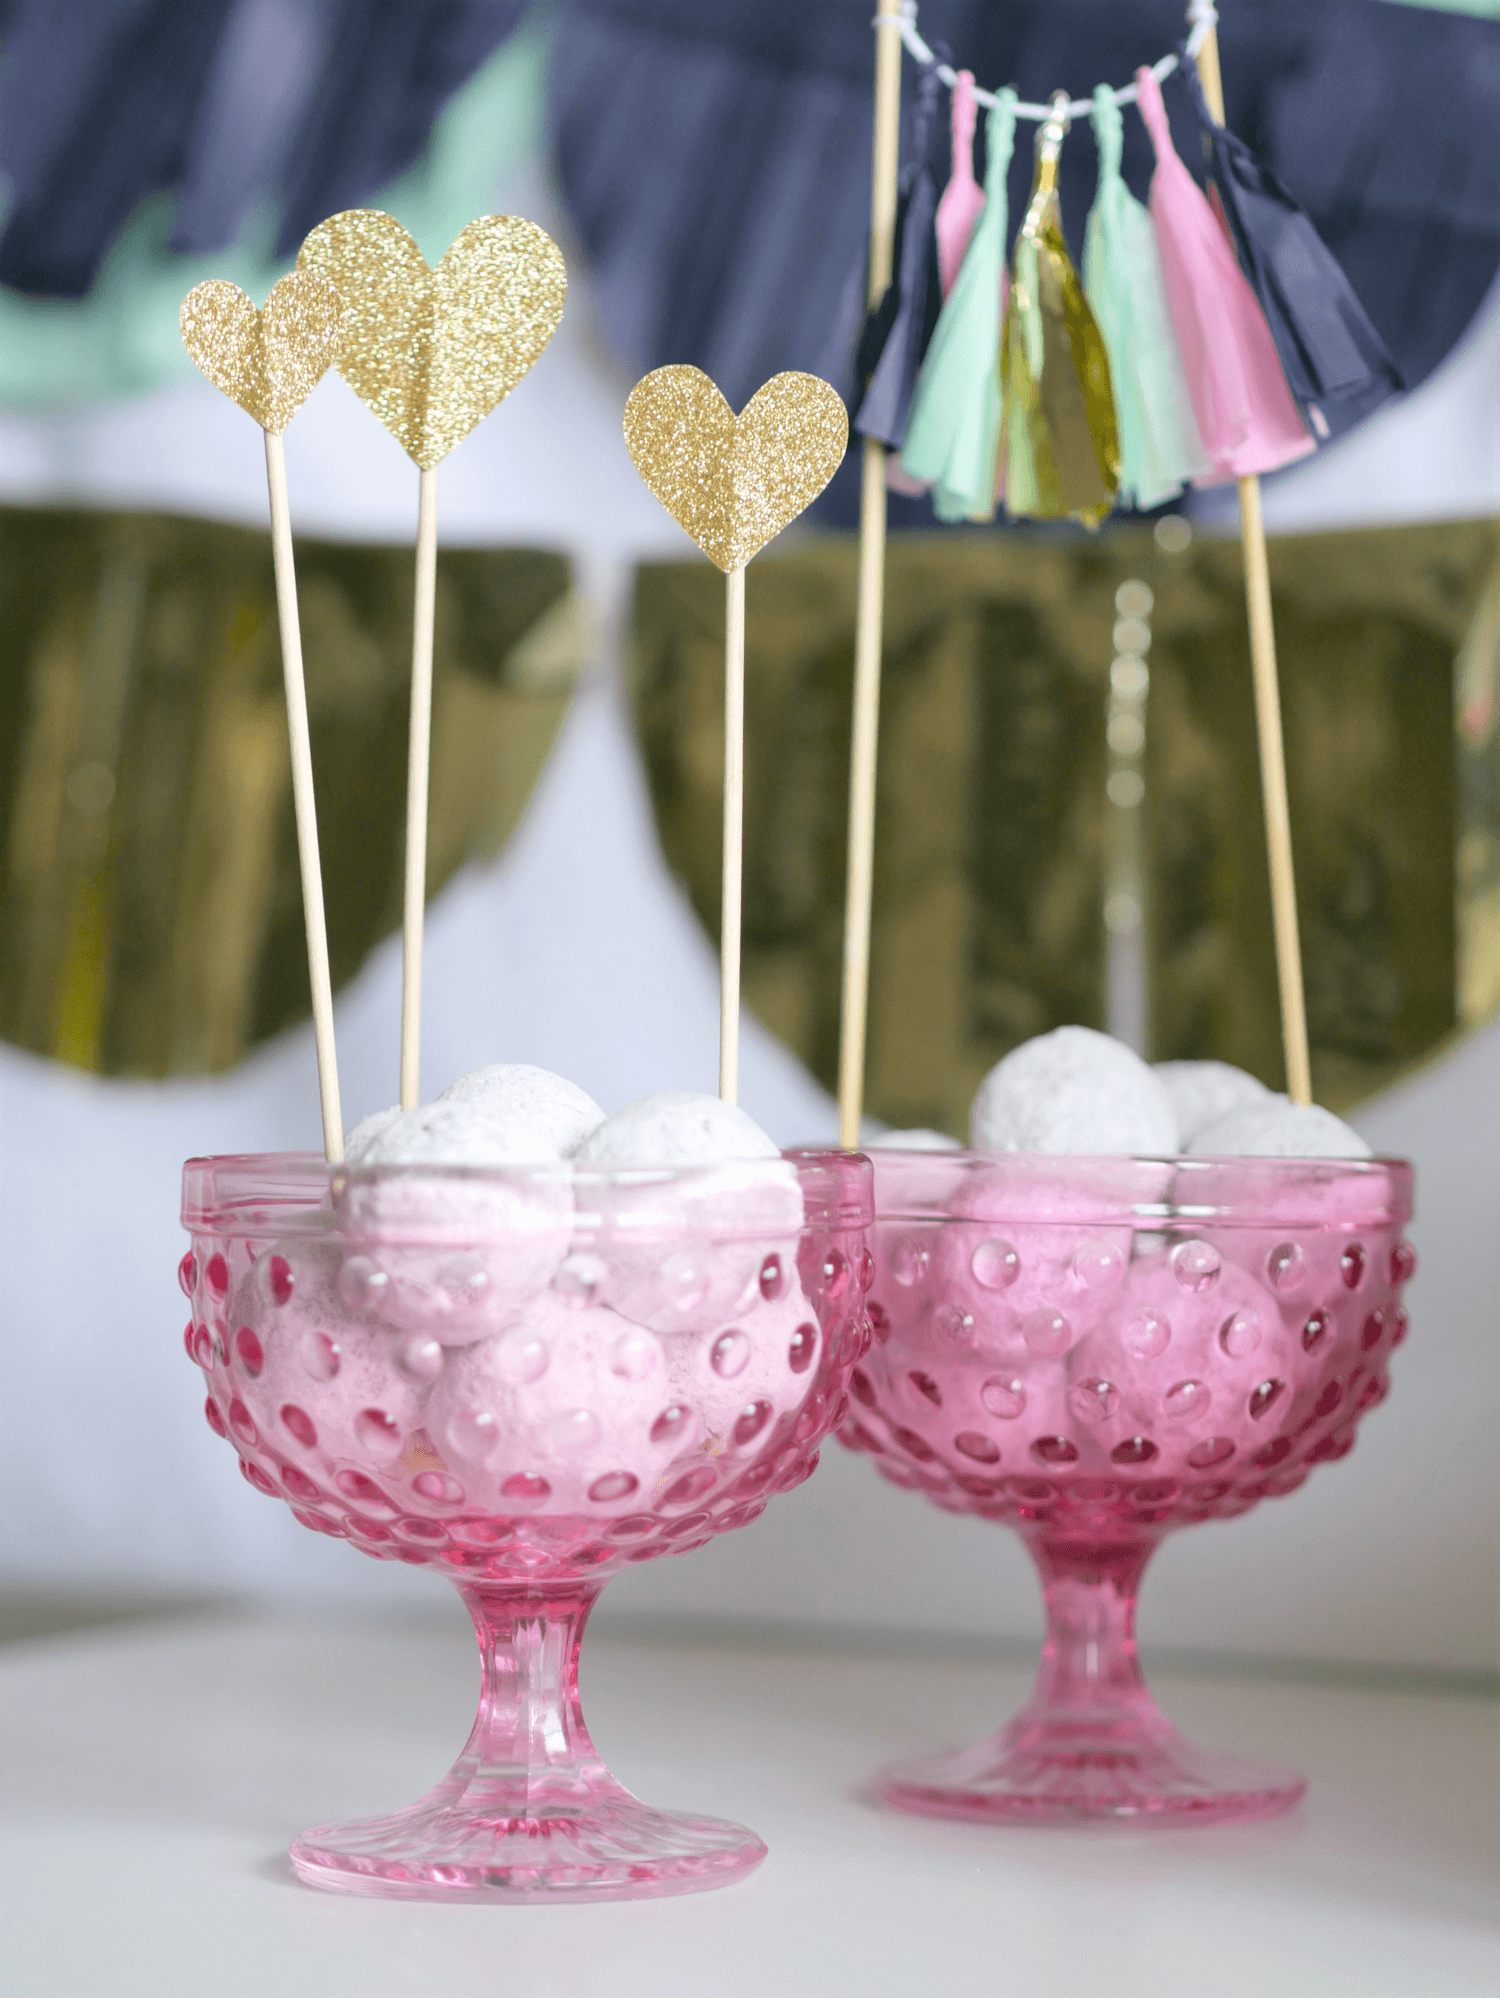 Valentines day party ideas / valentines day dessert ideas / valentines day cake toppers / valentines day party party decor / Styled by MINT Event Design / www.minteventdesign.com